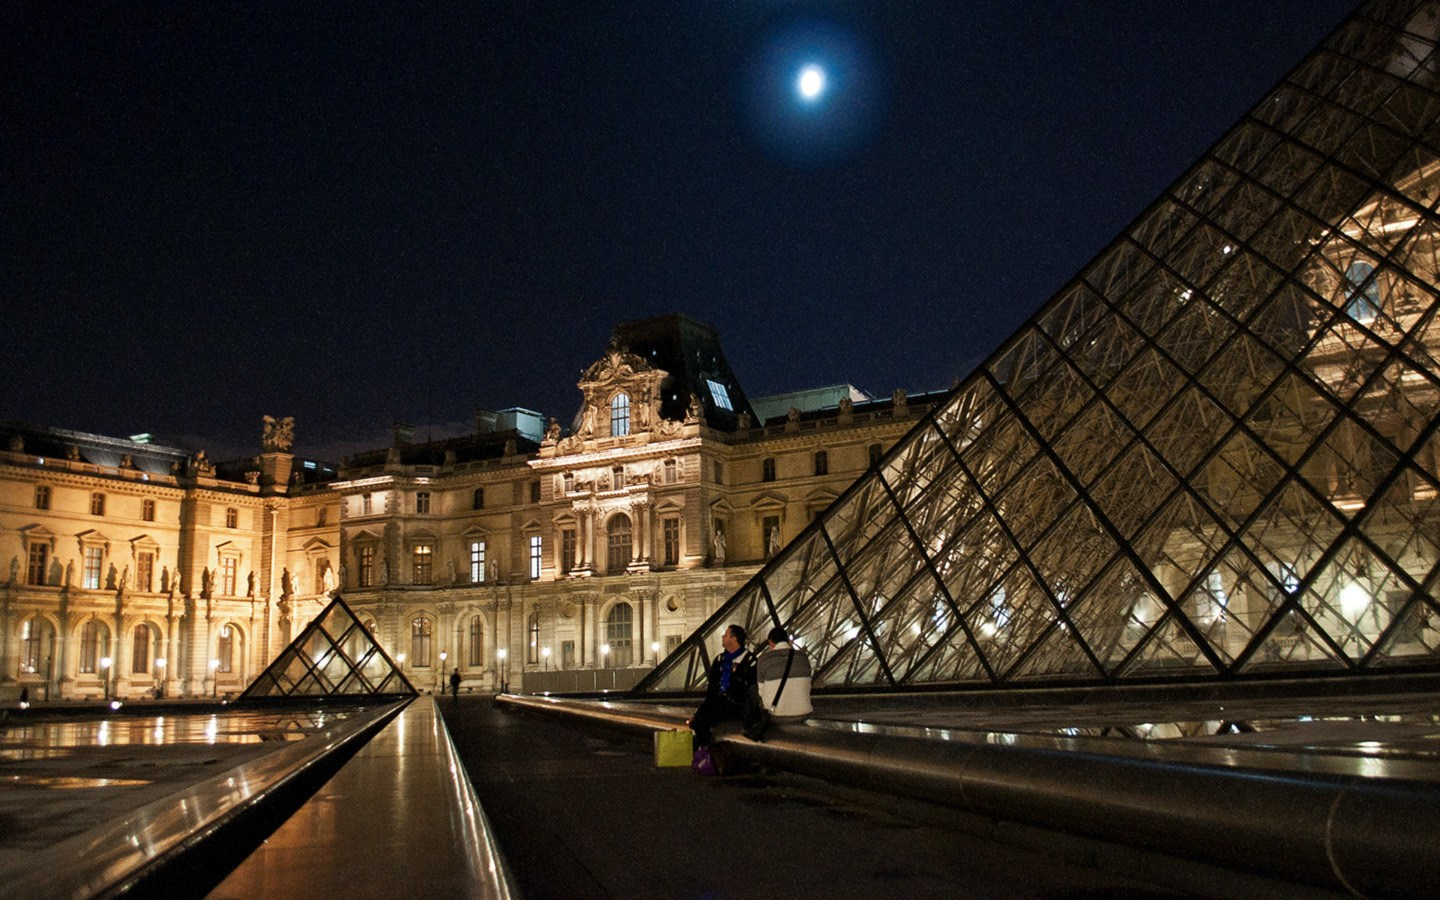 The Louvre museum in Paris at night